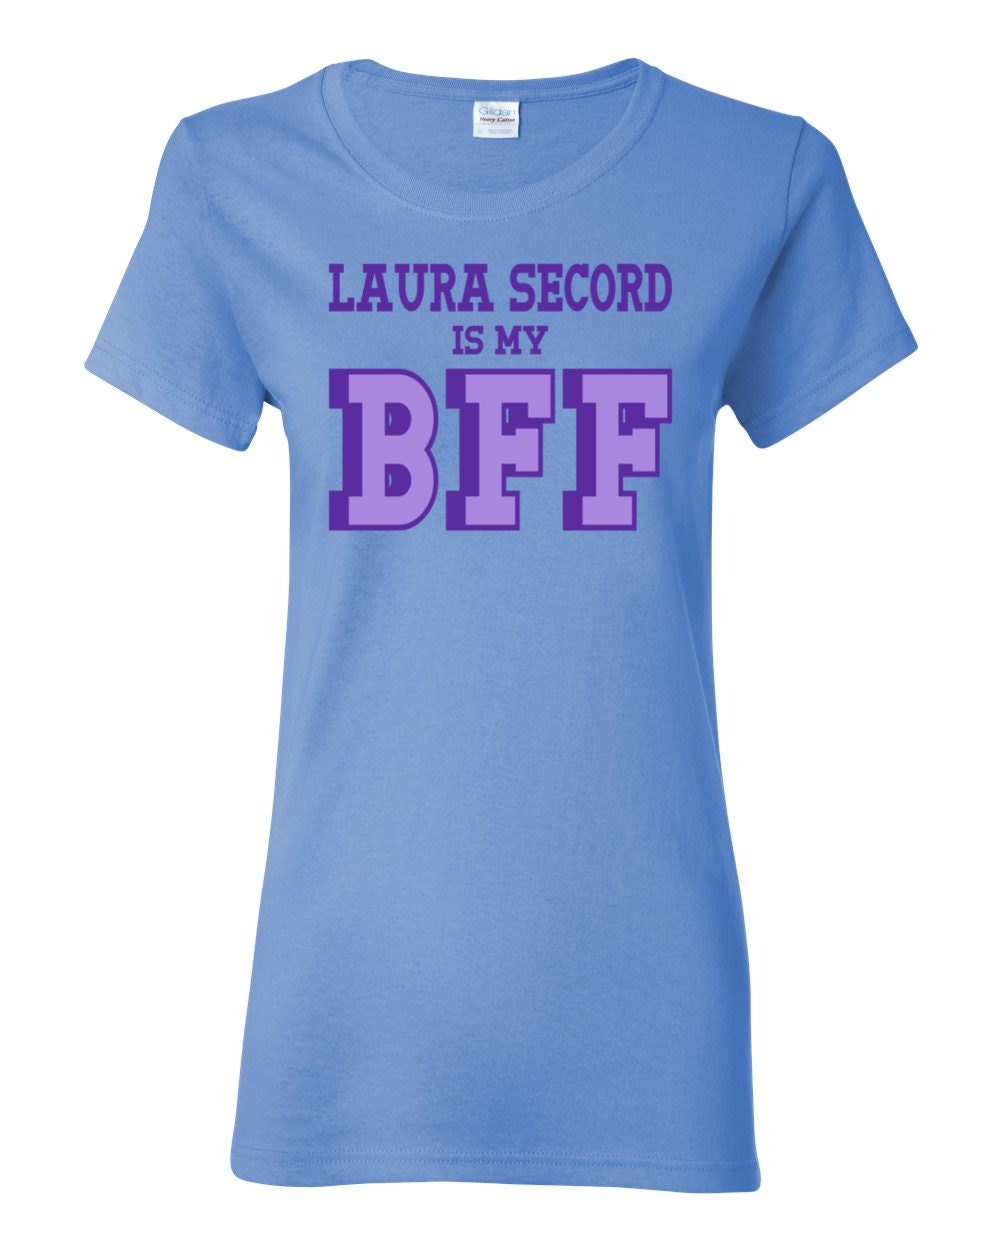 Great Women of History - Laura Secord is my BFF Womens History T-shirt